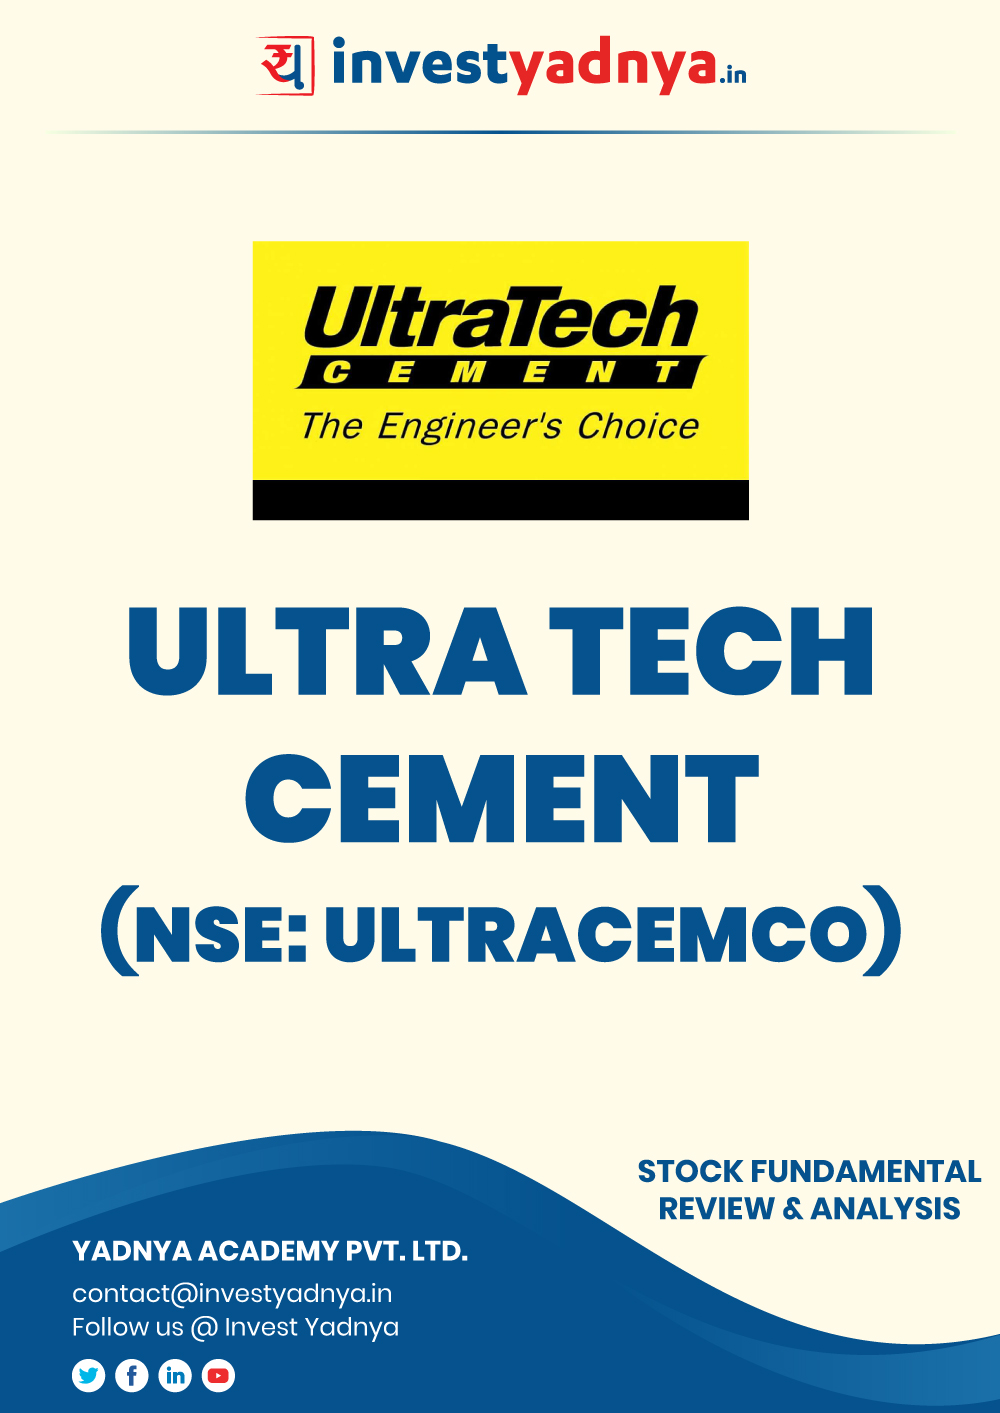 Ultratech Cement Ltd. company/Stock Review & Analysis based on Q12019-20 and FY2018-19 data. The book contains Fundamental Analysis of the company considering both Quantitative (Financial) and Qualitative parameters. Book is updated as on 30th Sept, 2019.